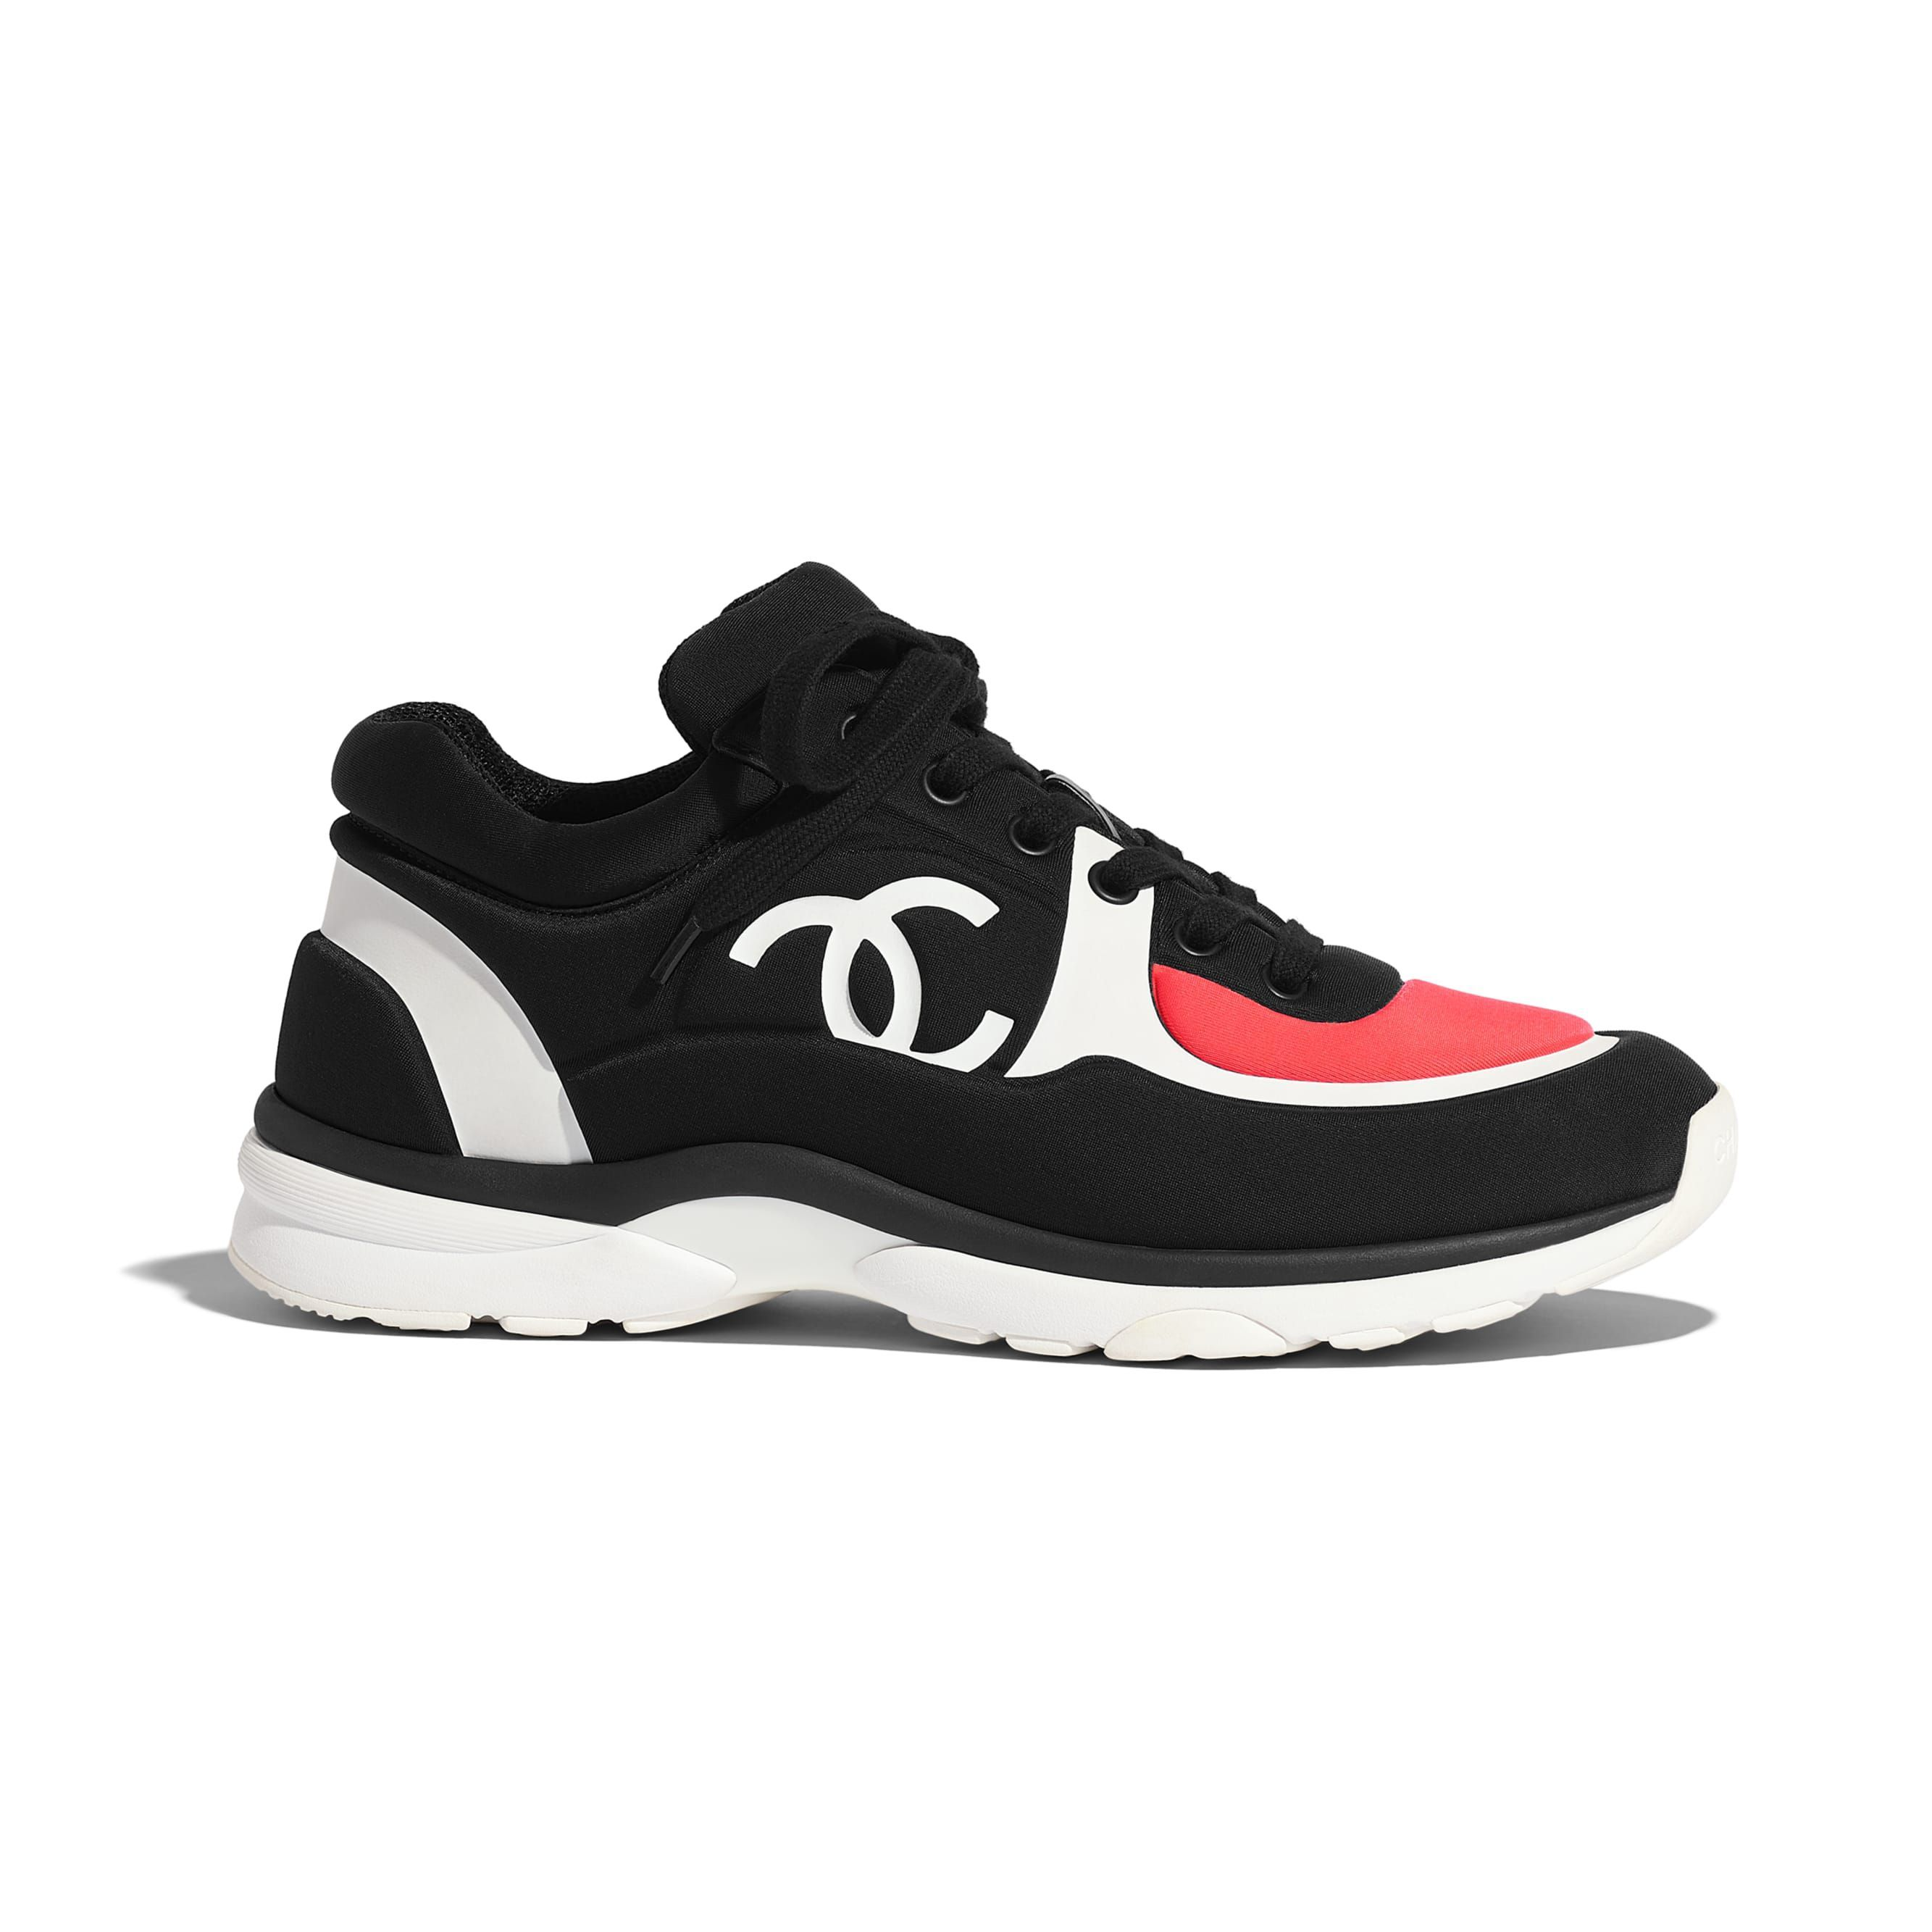 Sneakers Chanel chanel.com $950.00 SHOP NOW An unexpected classic you'll pass on for years to come.